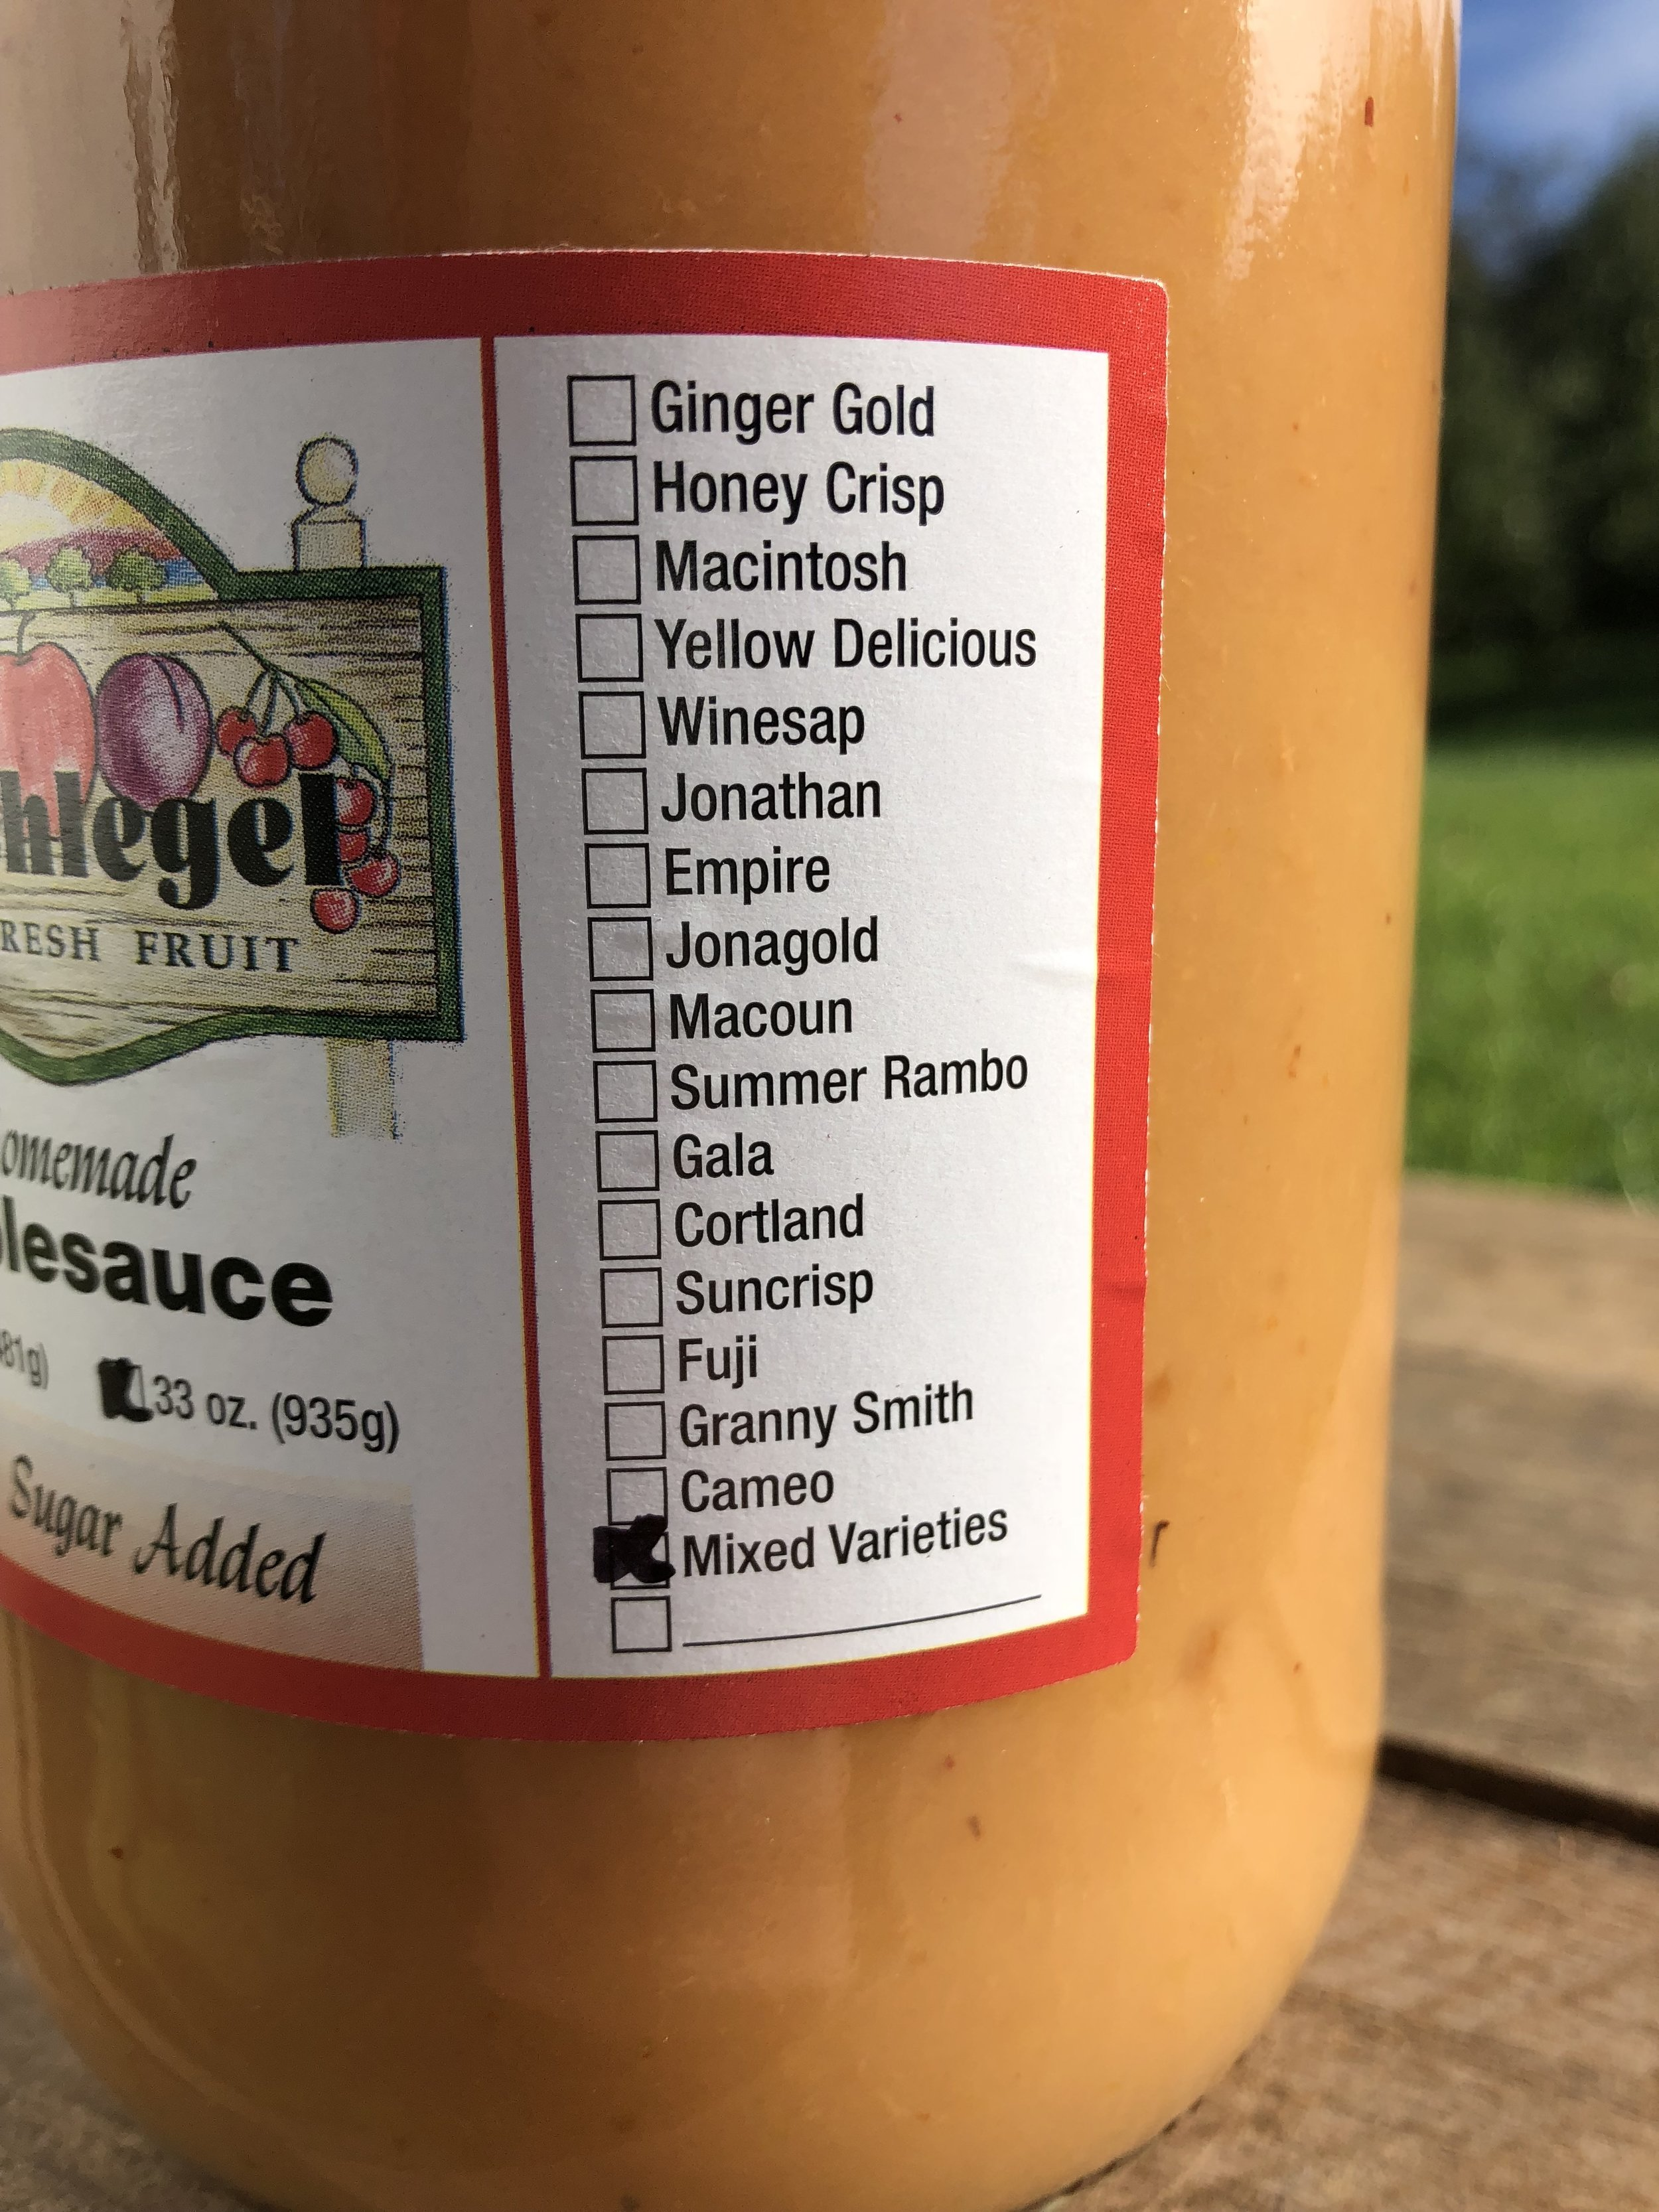 Be sure to check out the many different varieties that we make!